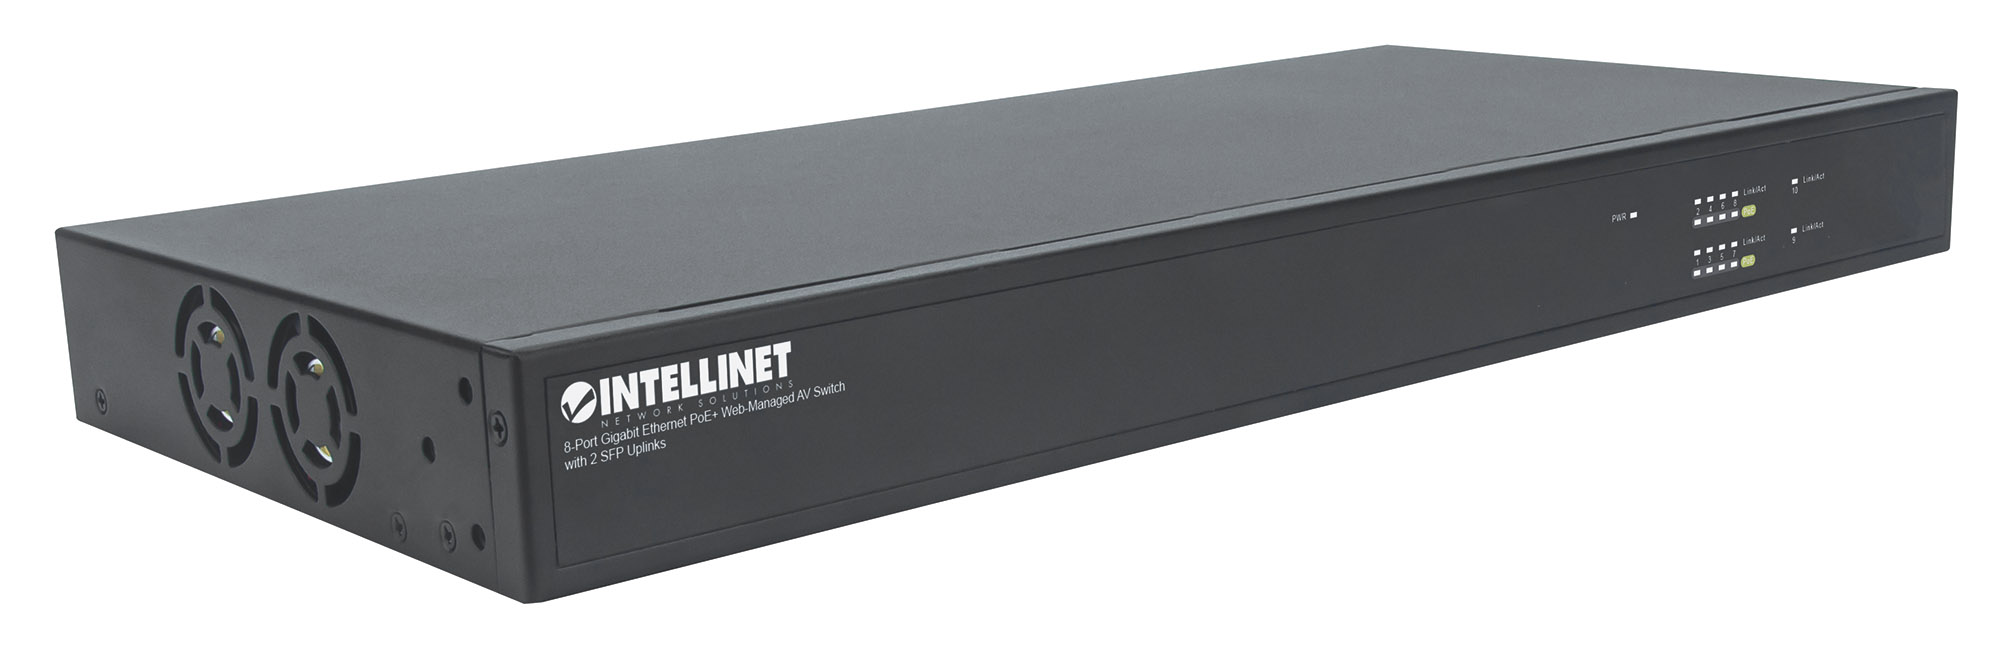 8-Port Gigabit Ethernet PoE+ Web-Managed AV Switch with 2 SFP Uplinks